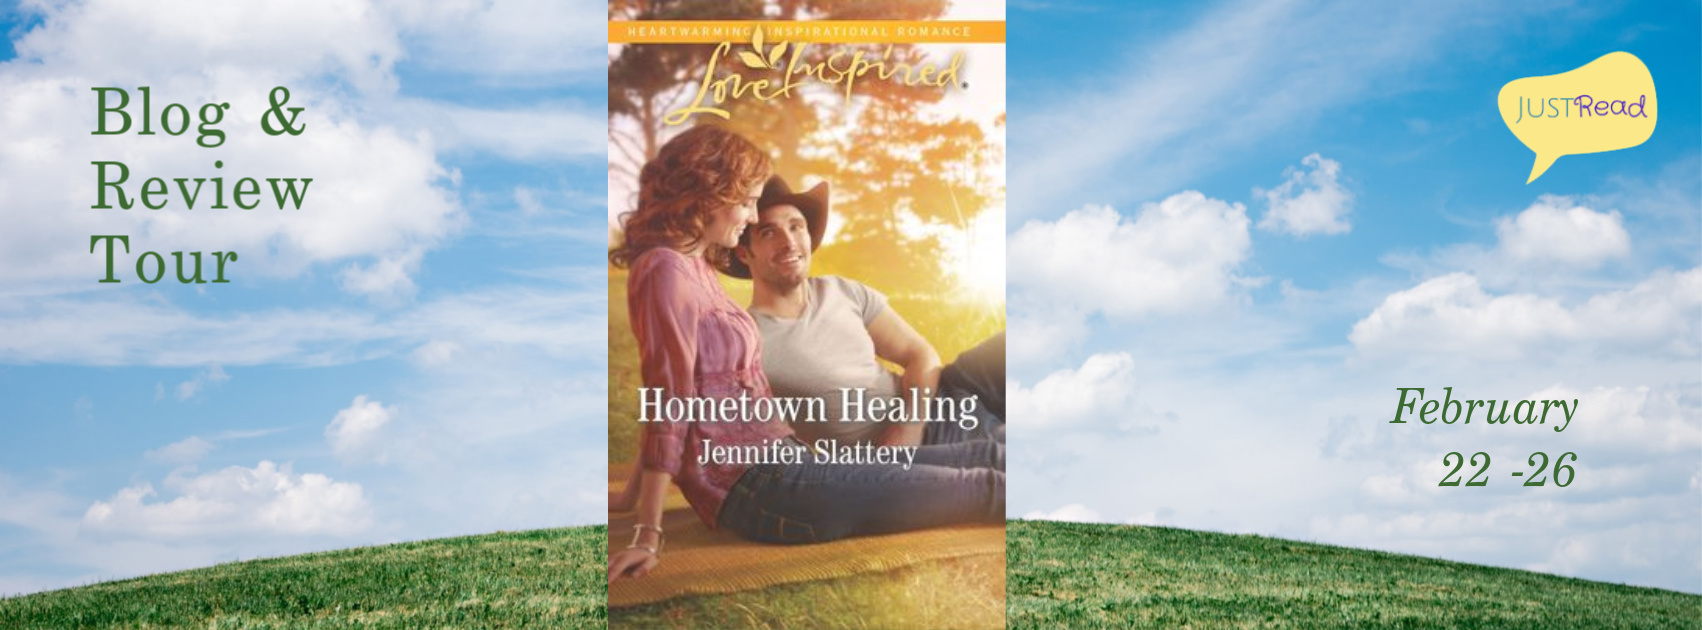 Welcome to the Hometown Healing Blog + Review Tour & Giveaway!